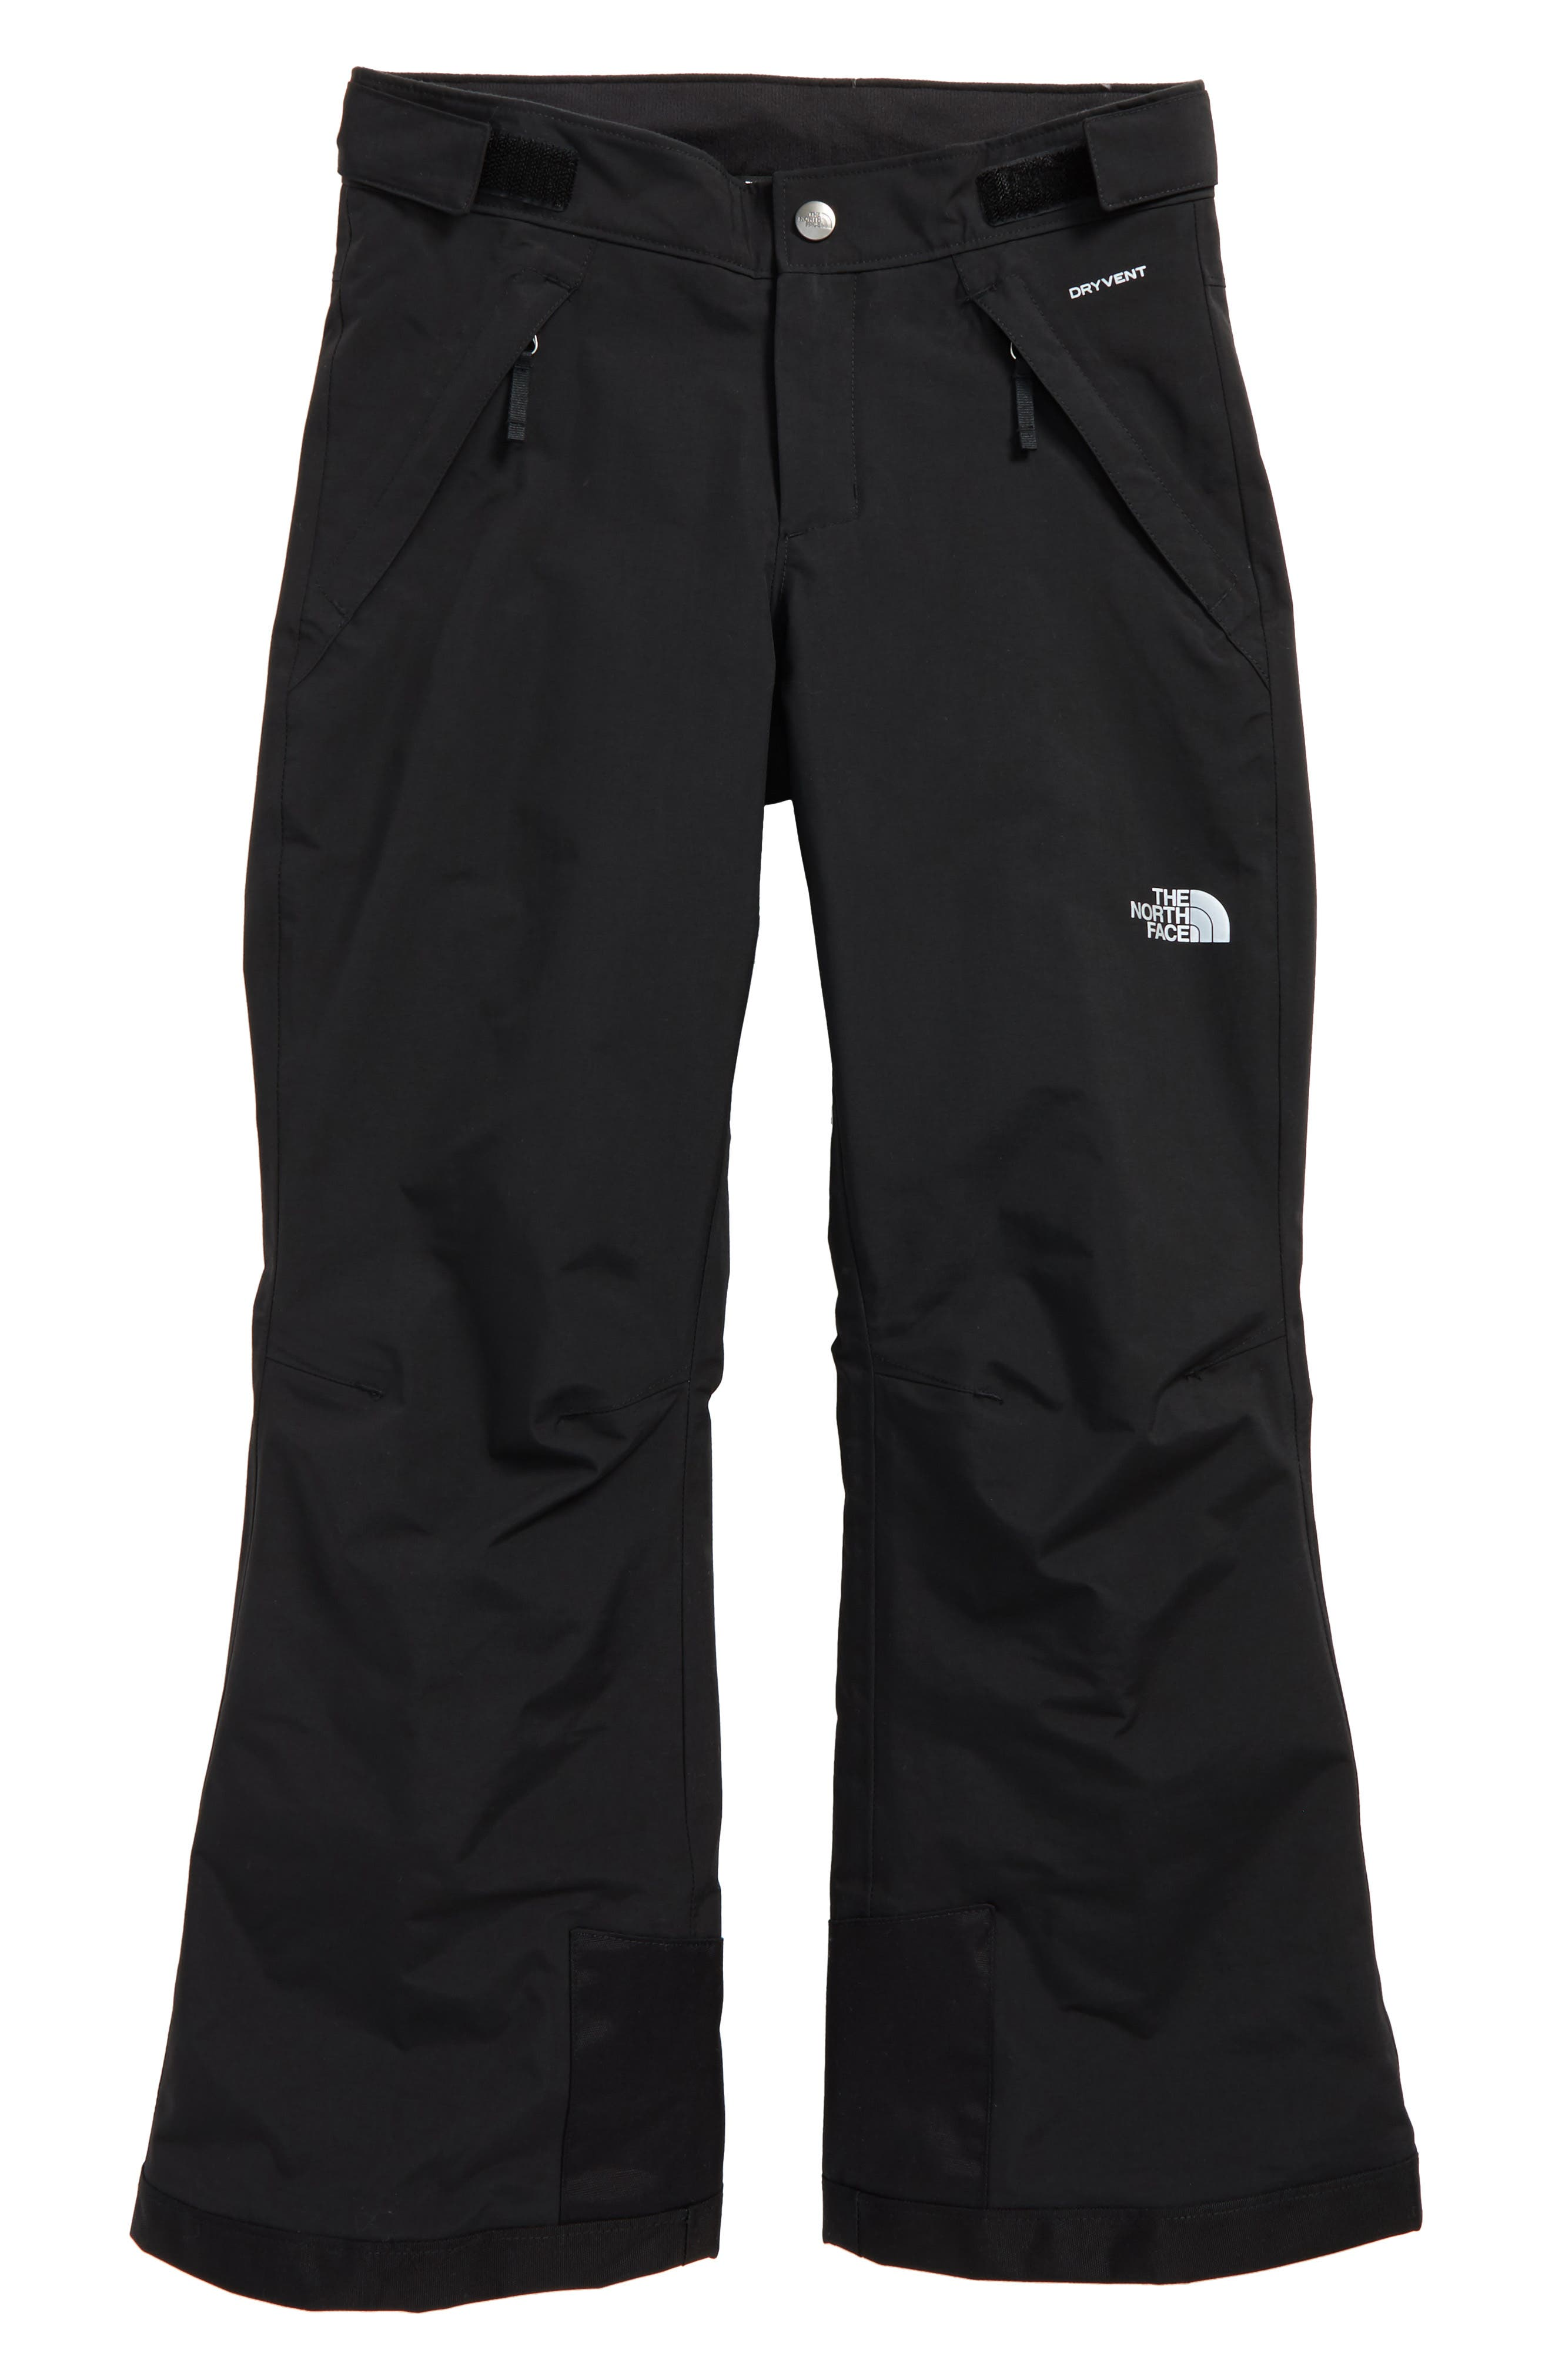 Girls The North Face Freedom Waterproof Heatseeker(TM) Insulated Snow Pants Size M (1012)  Black